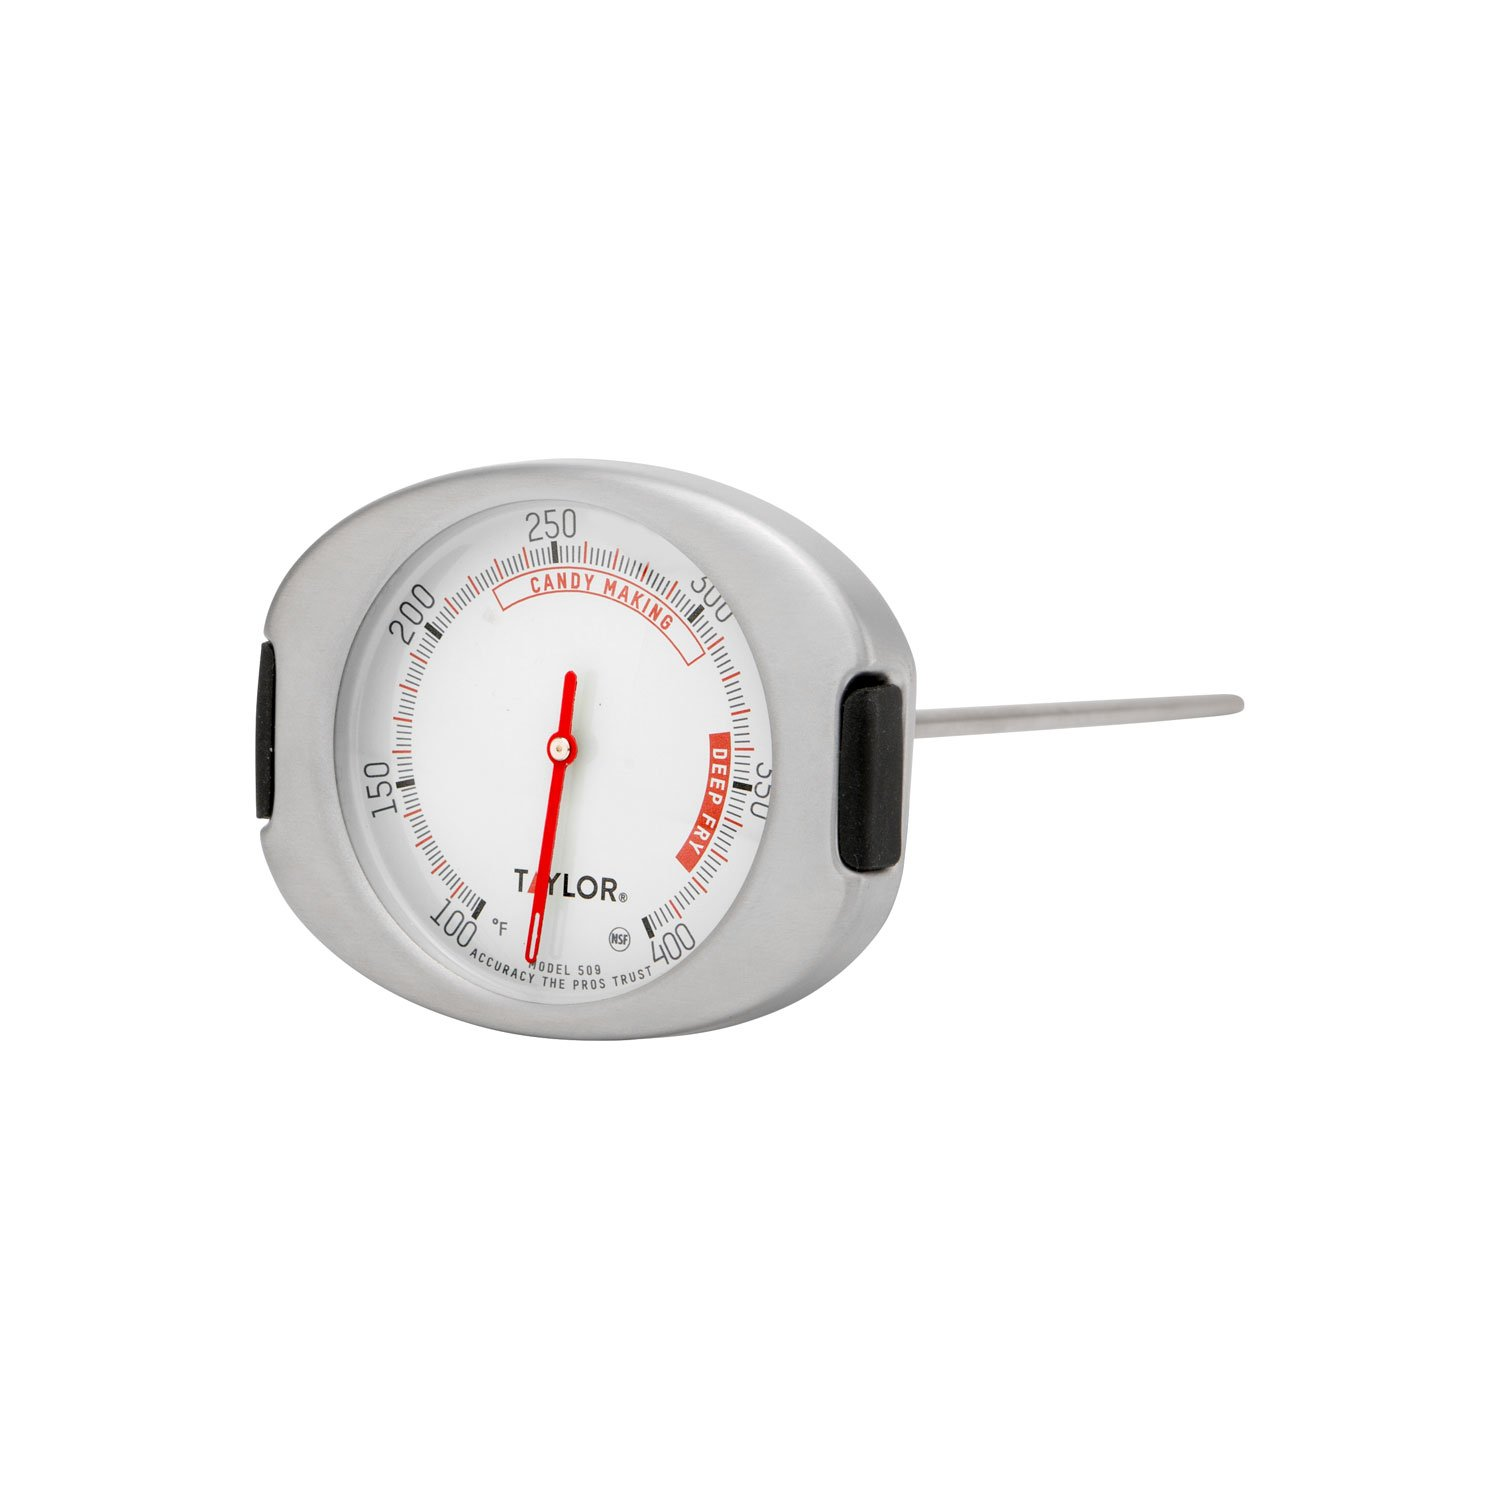 Taylor Connoissuer Line Candy-Deep Fry Thermometer Taylor Precision Products 509